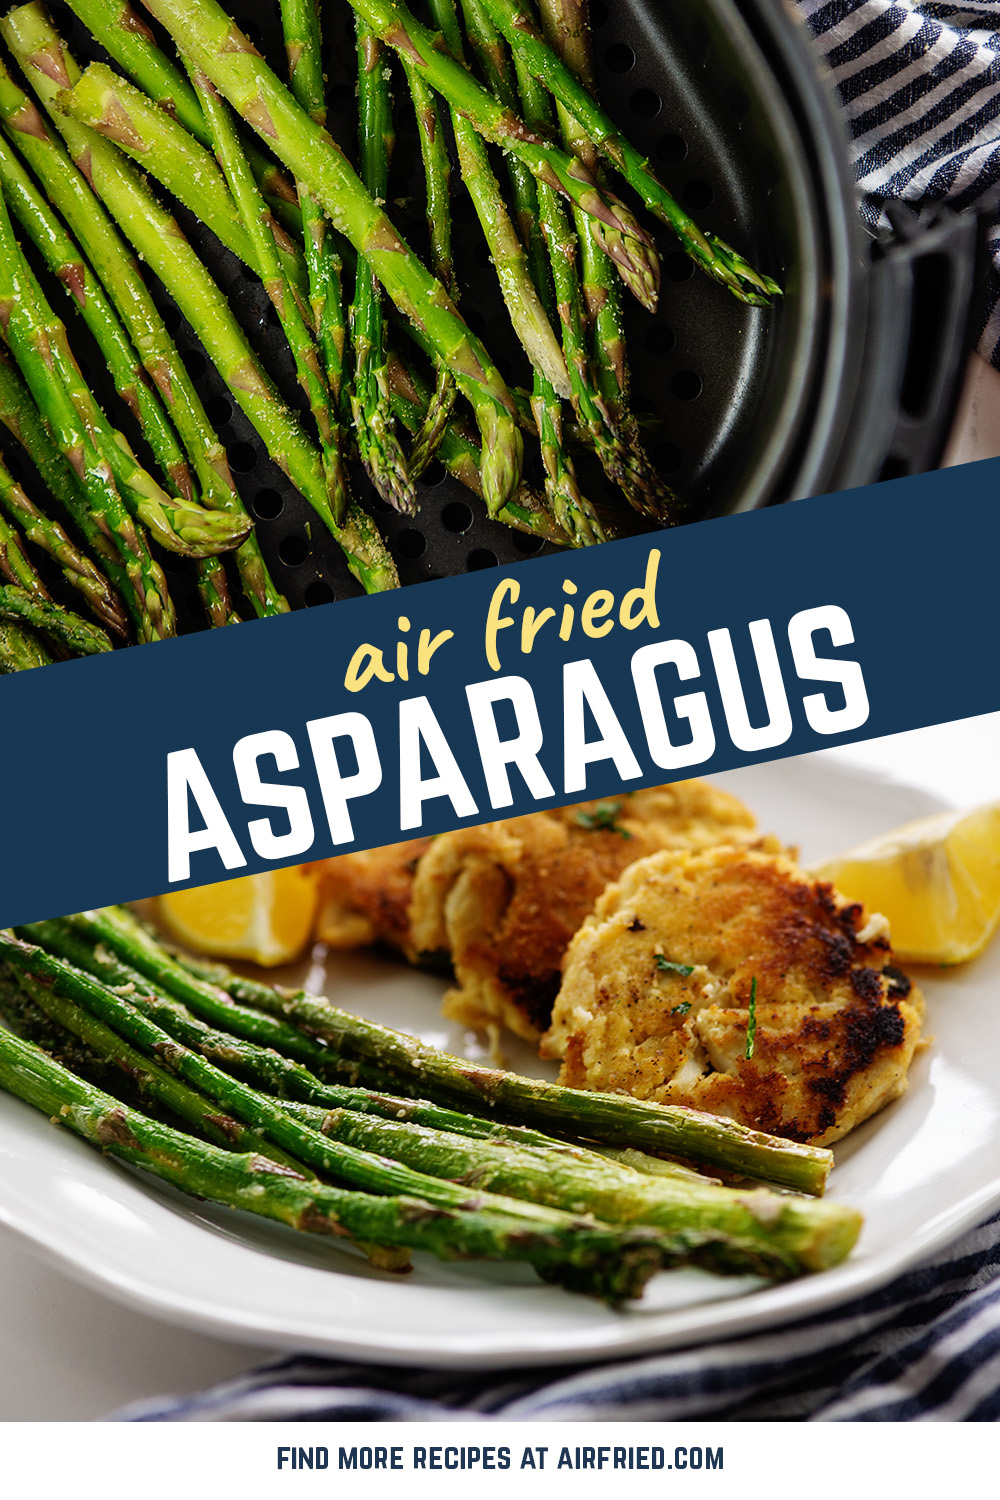 Try out these air fried asparagus for a healthy snack or side dish!  #Garlicparmesan #ketosidedishes #recipes